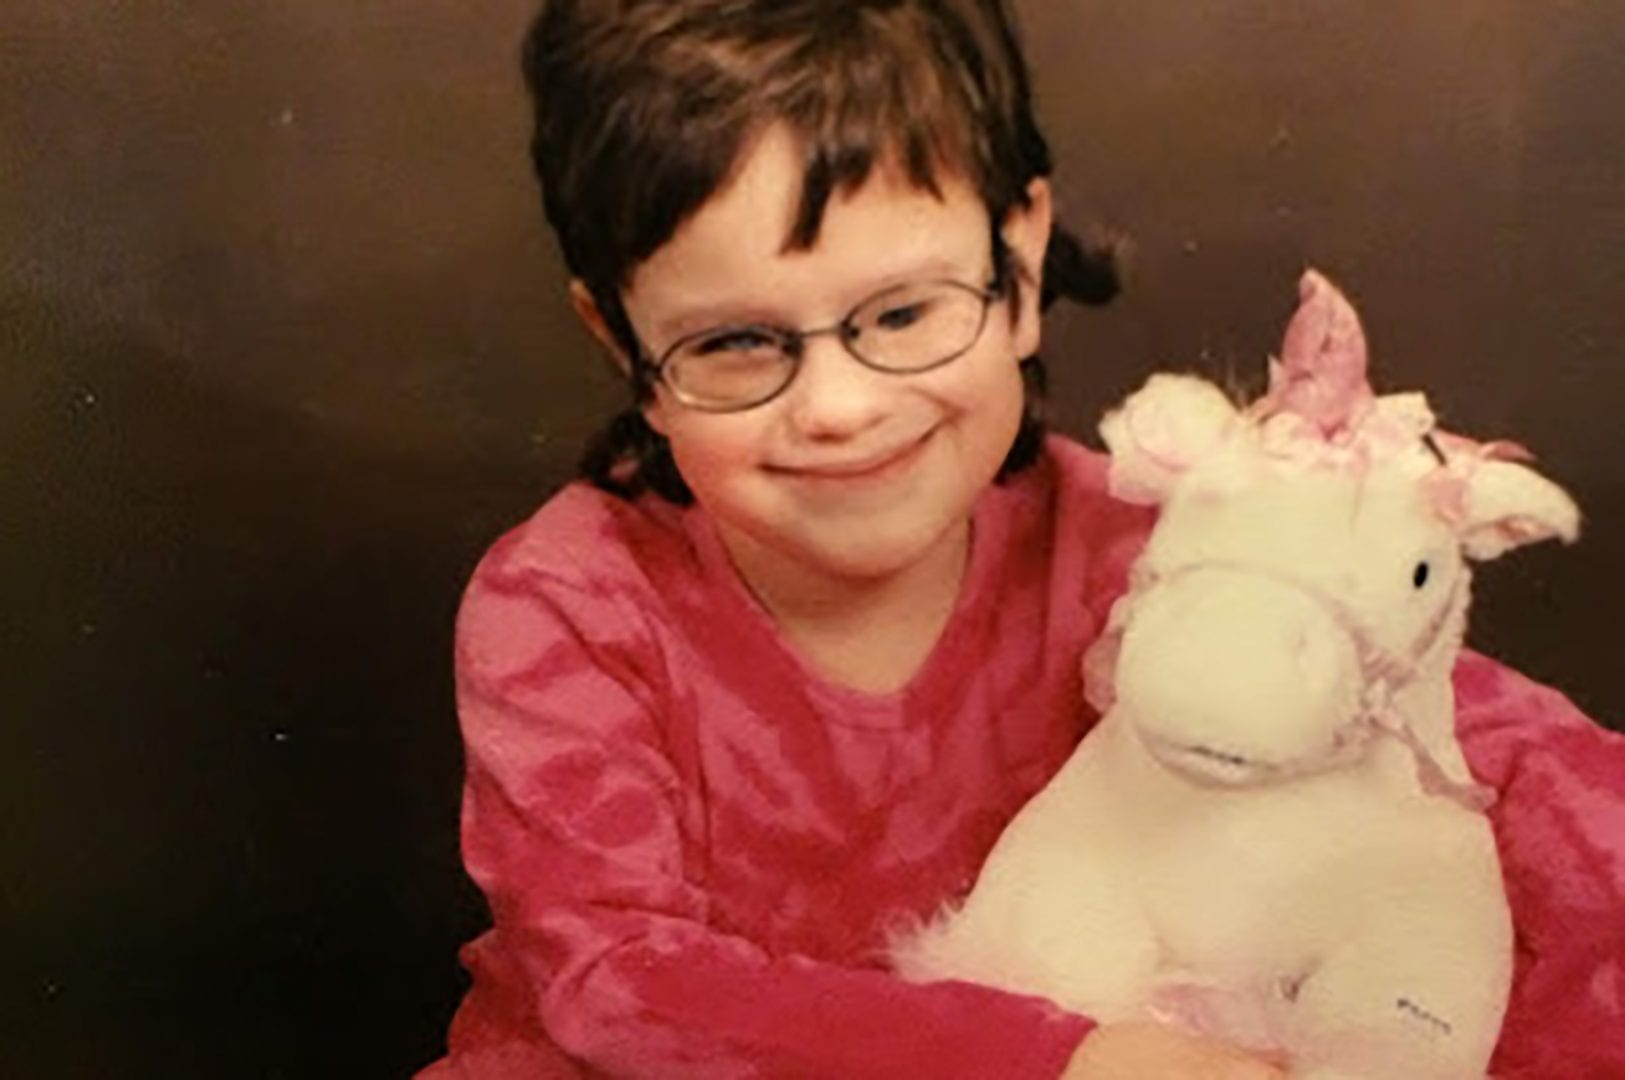 Young Jessica posing for a photo with a stuffed unicorn